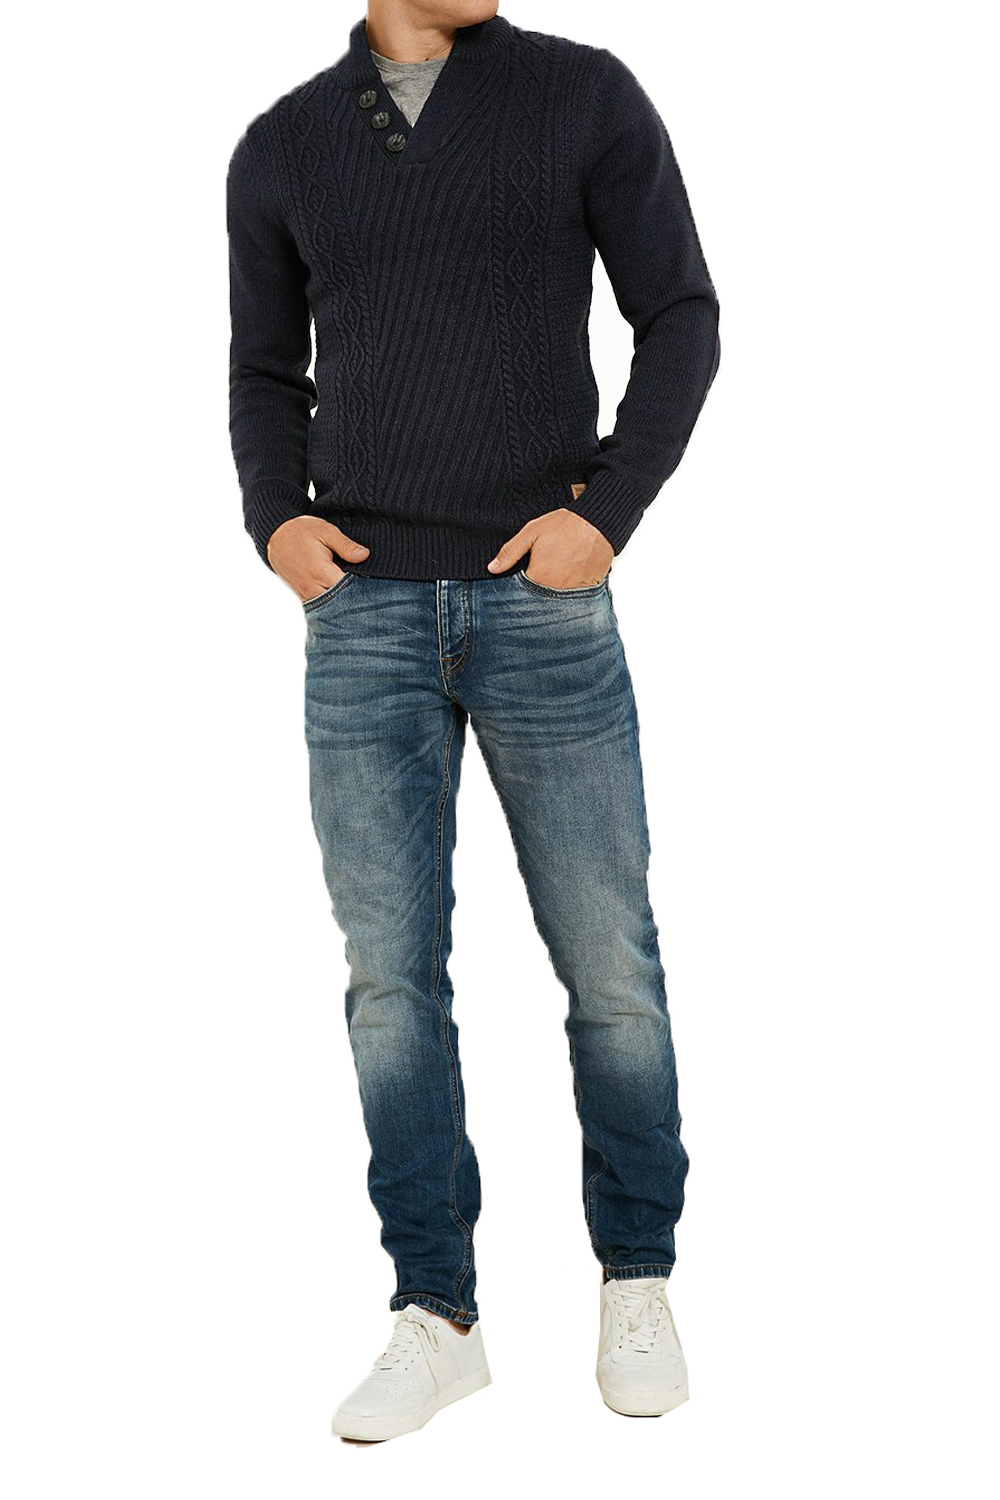 Threadbare-Wray-Mens-Top-Cable-Knited-Designer-Luxurious-Wool-Mix-Raglan-Jumpers thumbnail 11